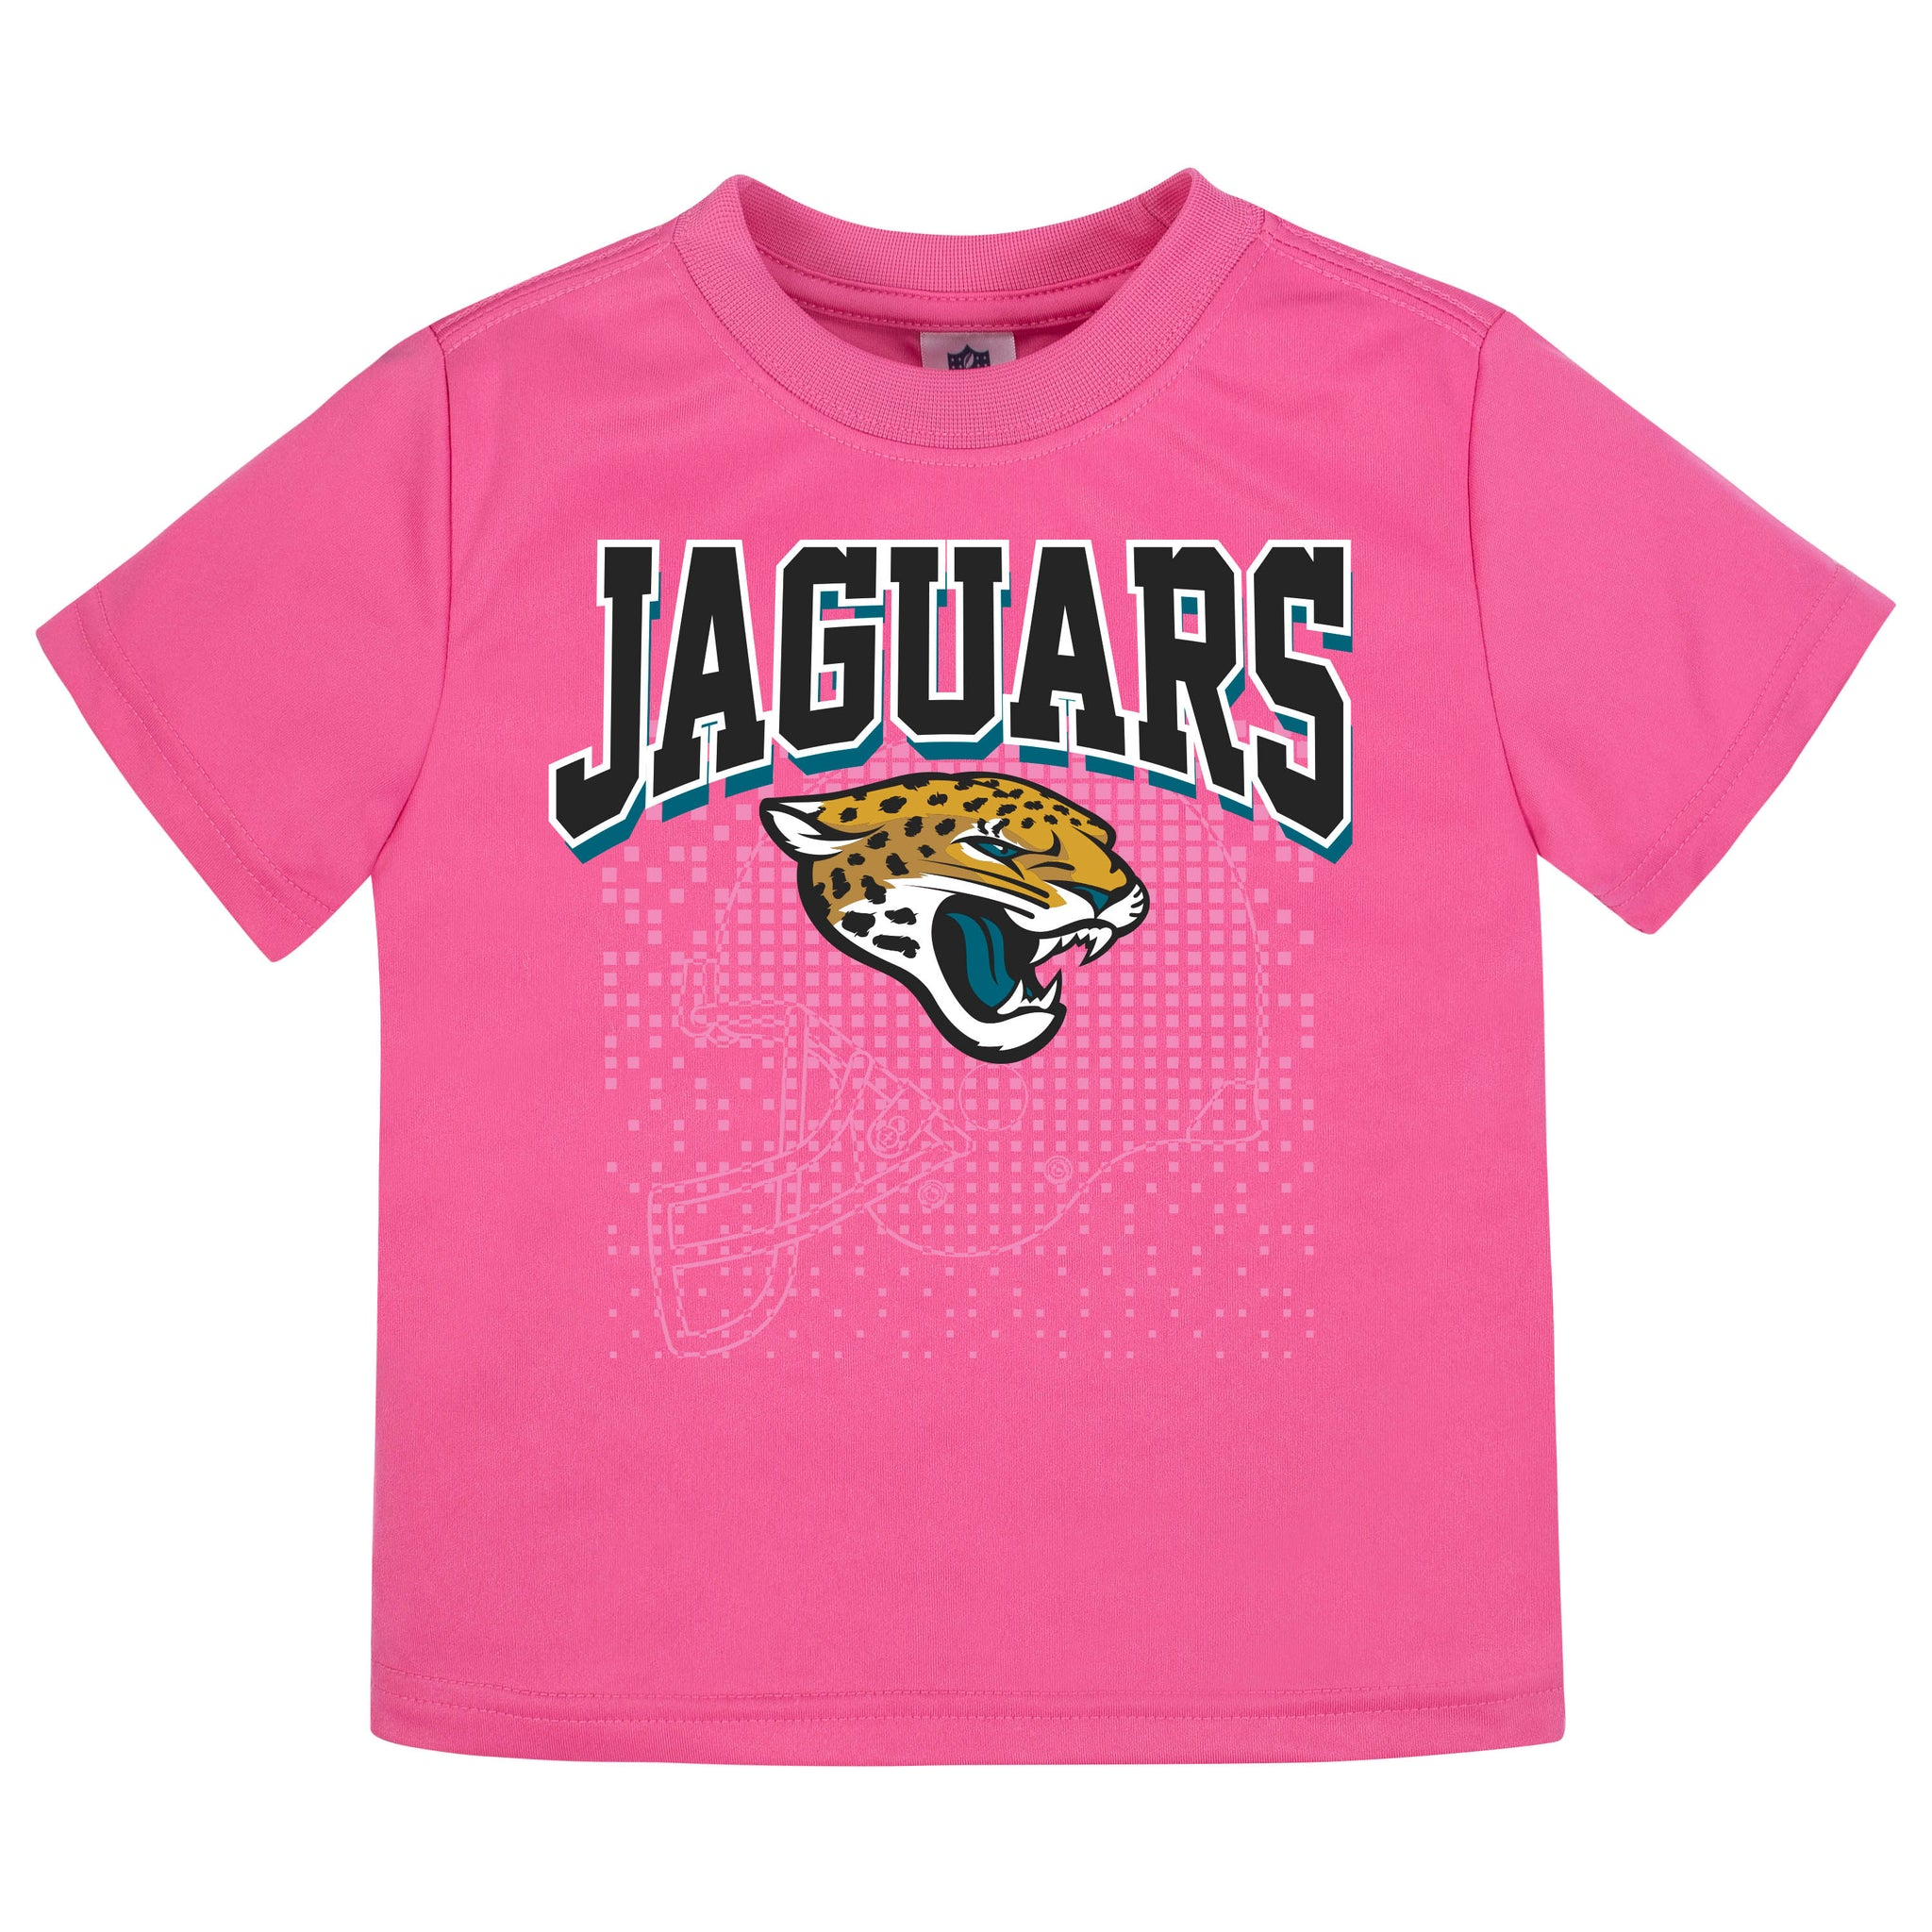 Jacksonville Jaguars Girls Short Sleeve Tee Shirt